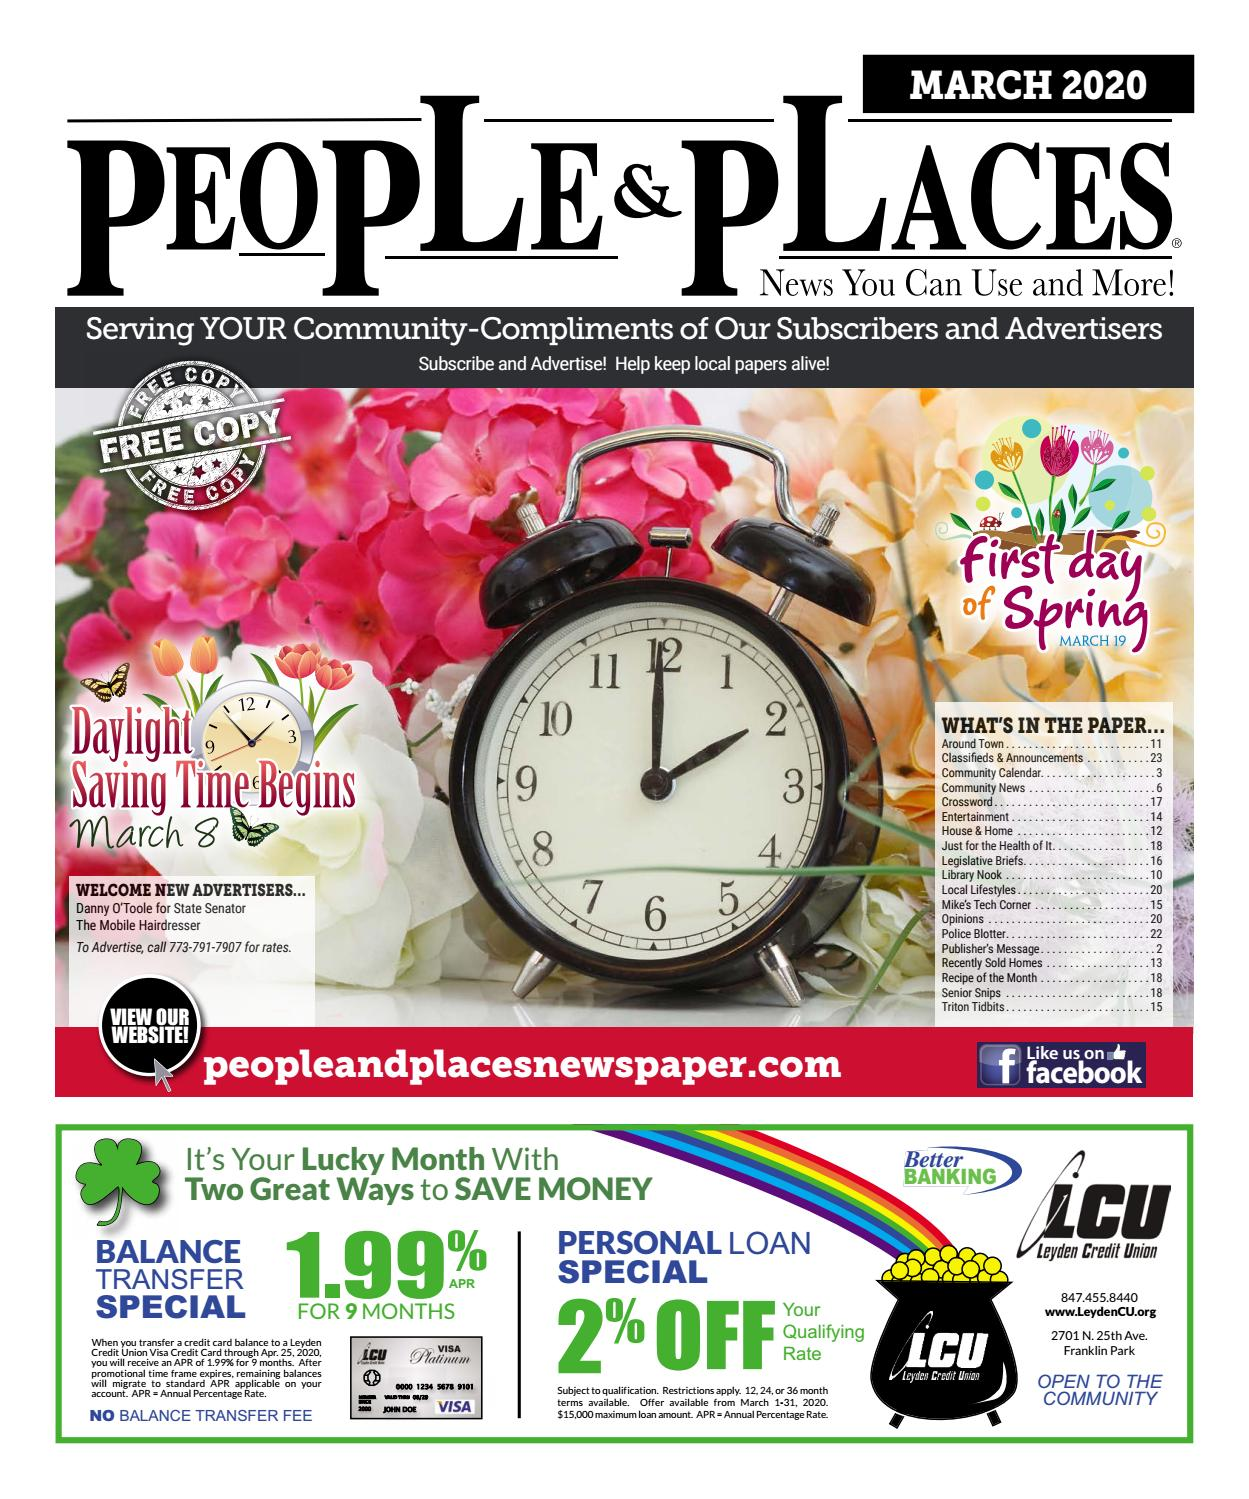 Dunkin Metro New York Halloween Contest 2020 Grand Prize Winner Filetype:Pdf March 2020 People & Places Newspaper by Jennifer Creative   issuu